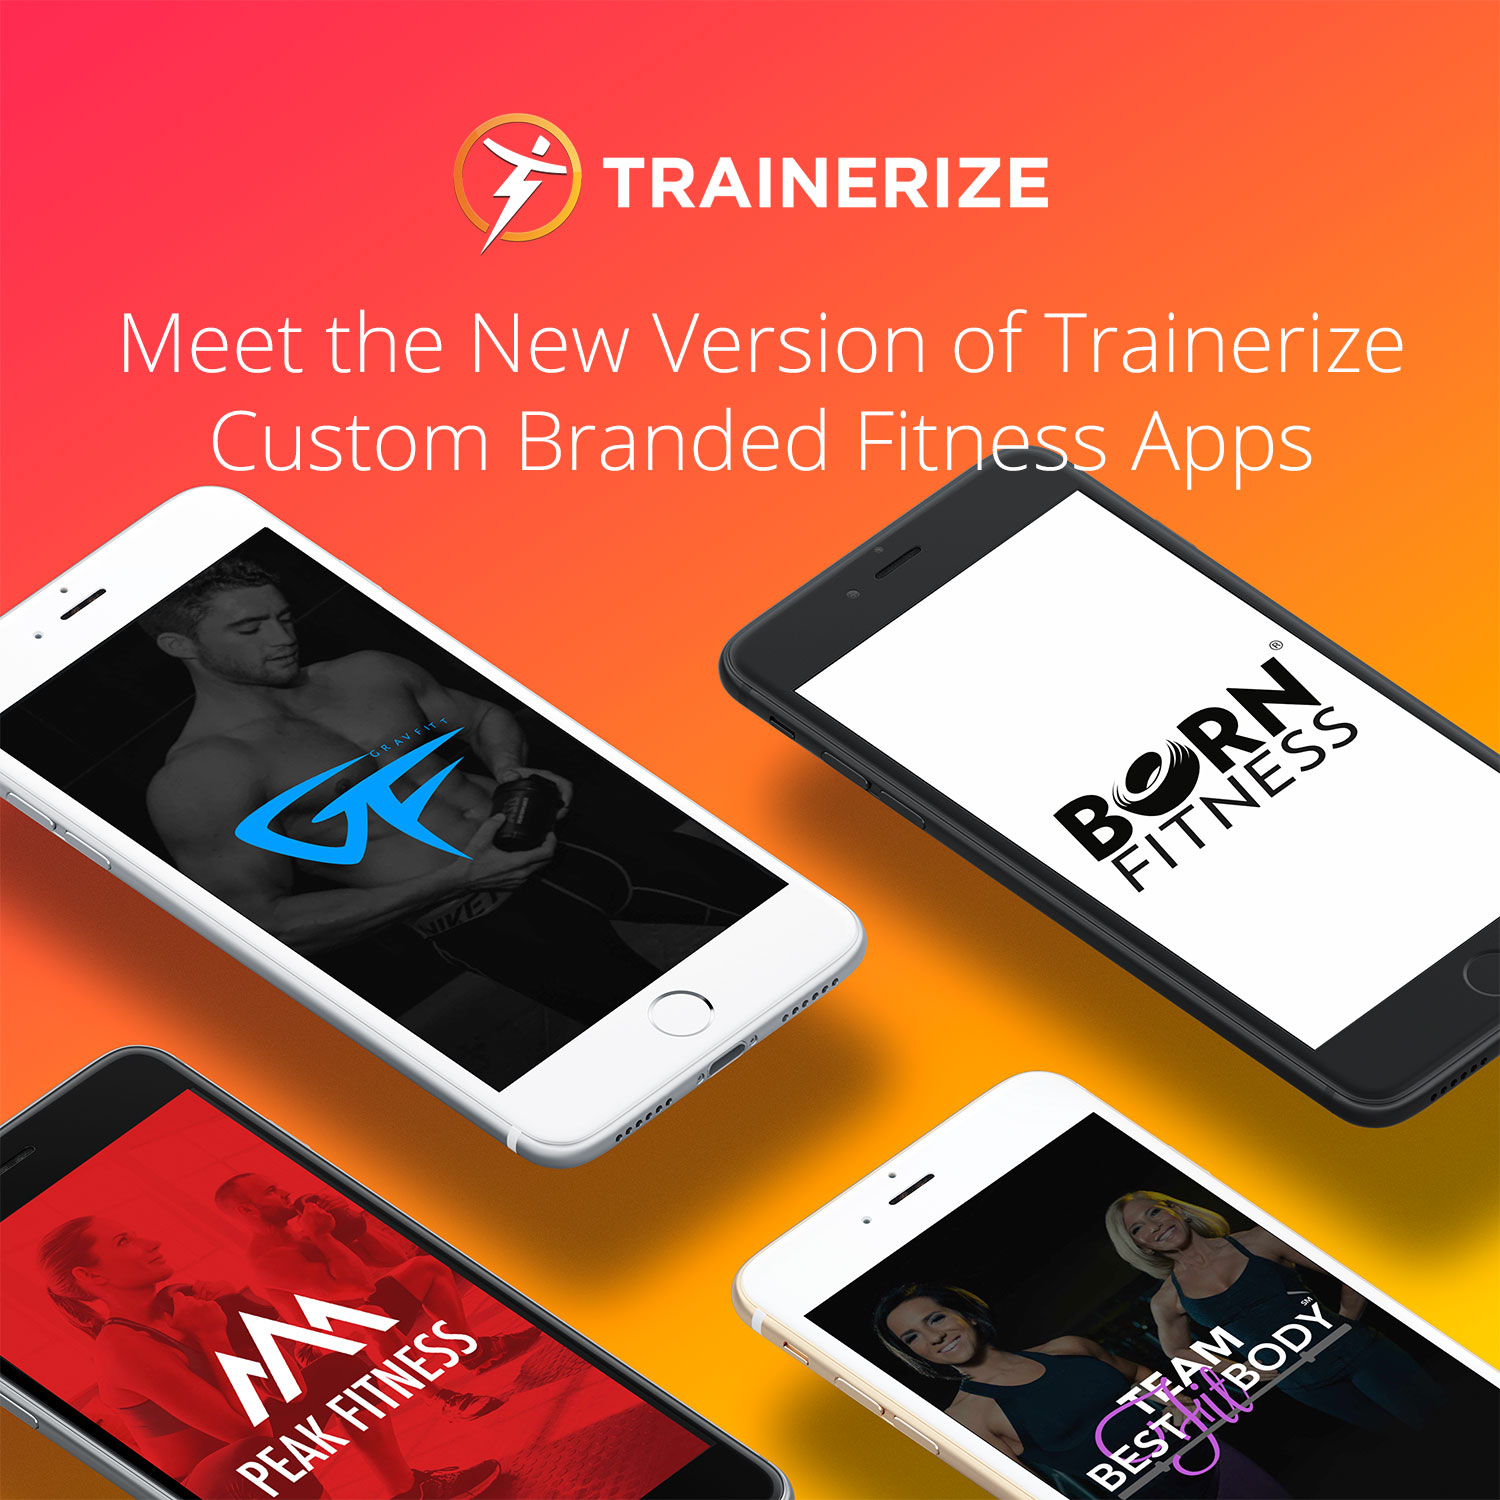 Meet the new version of Trainerize Custom Branded Fitness Apps